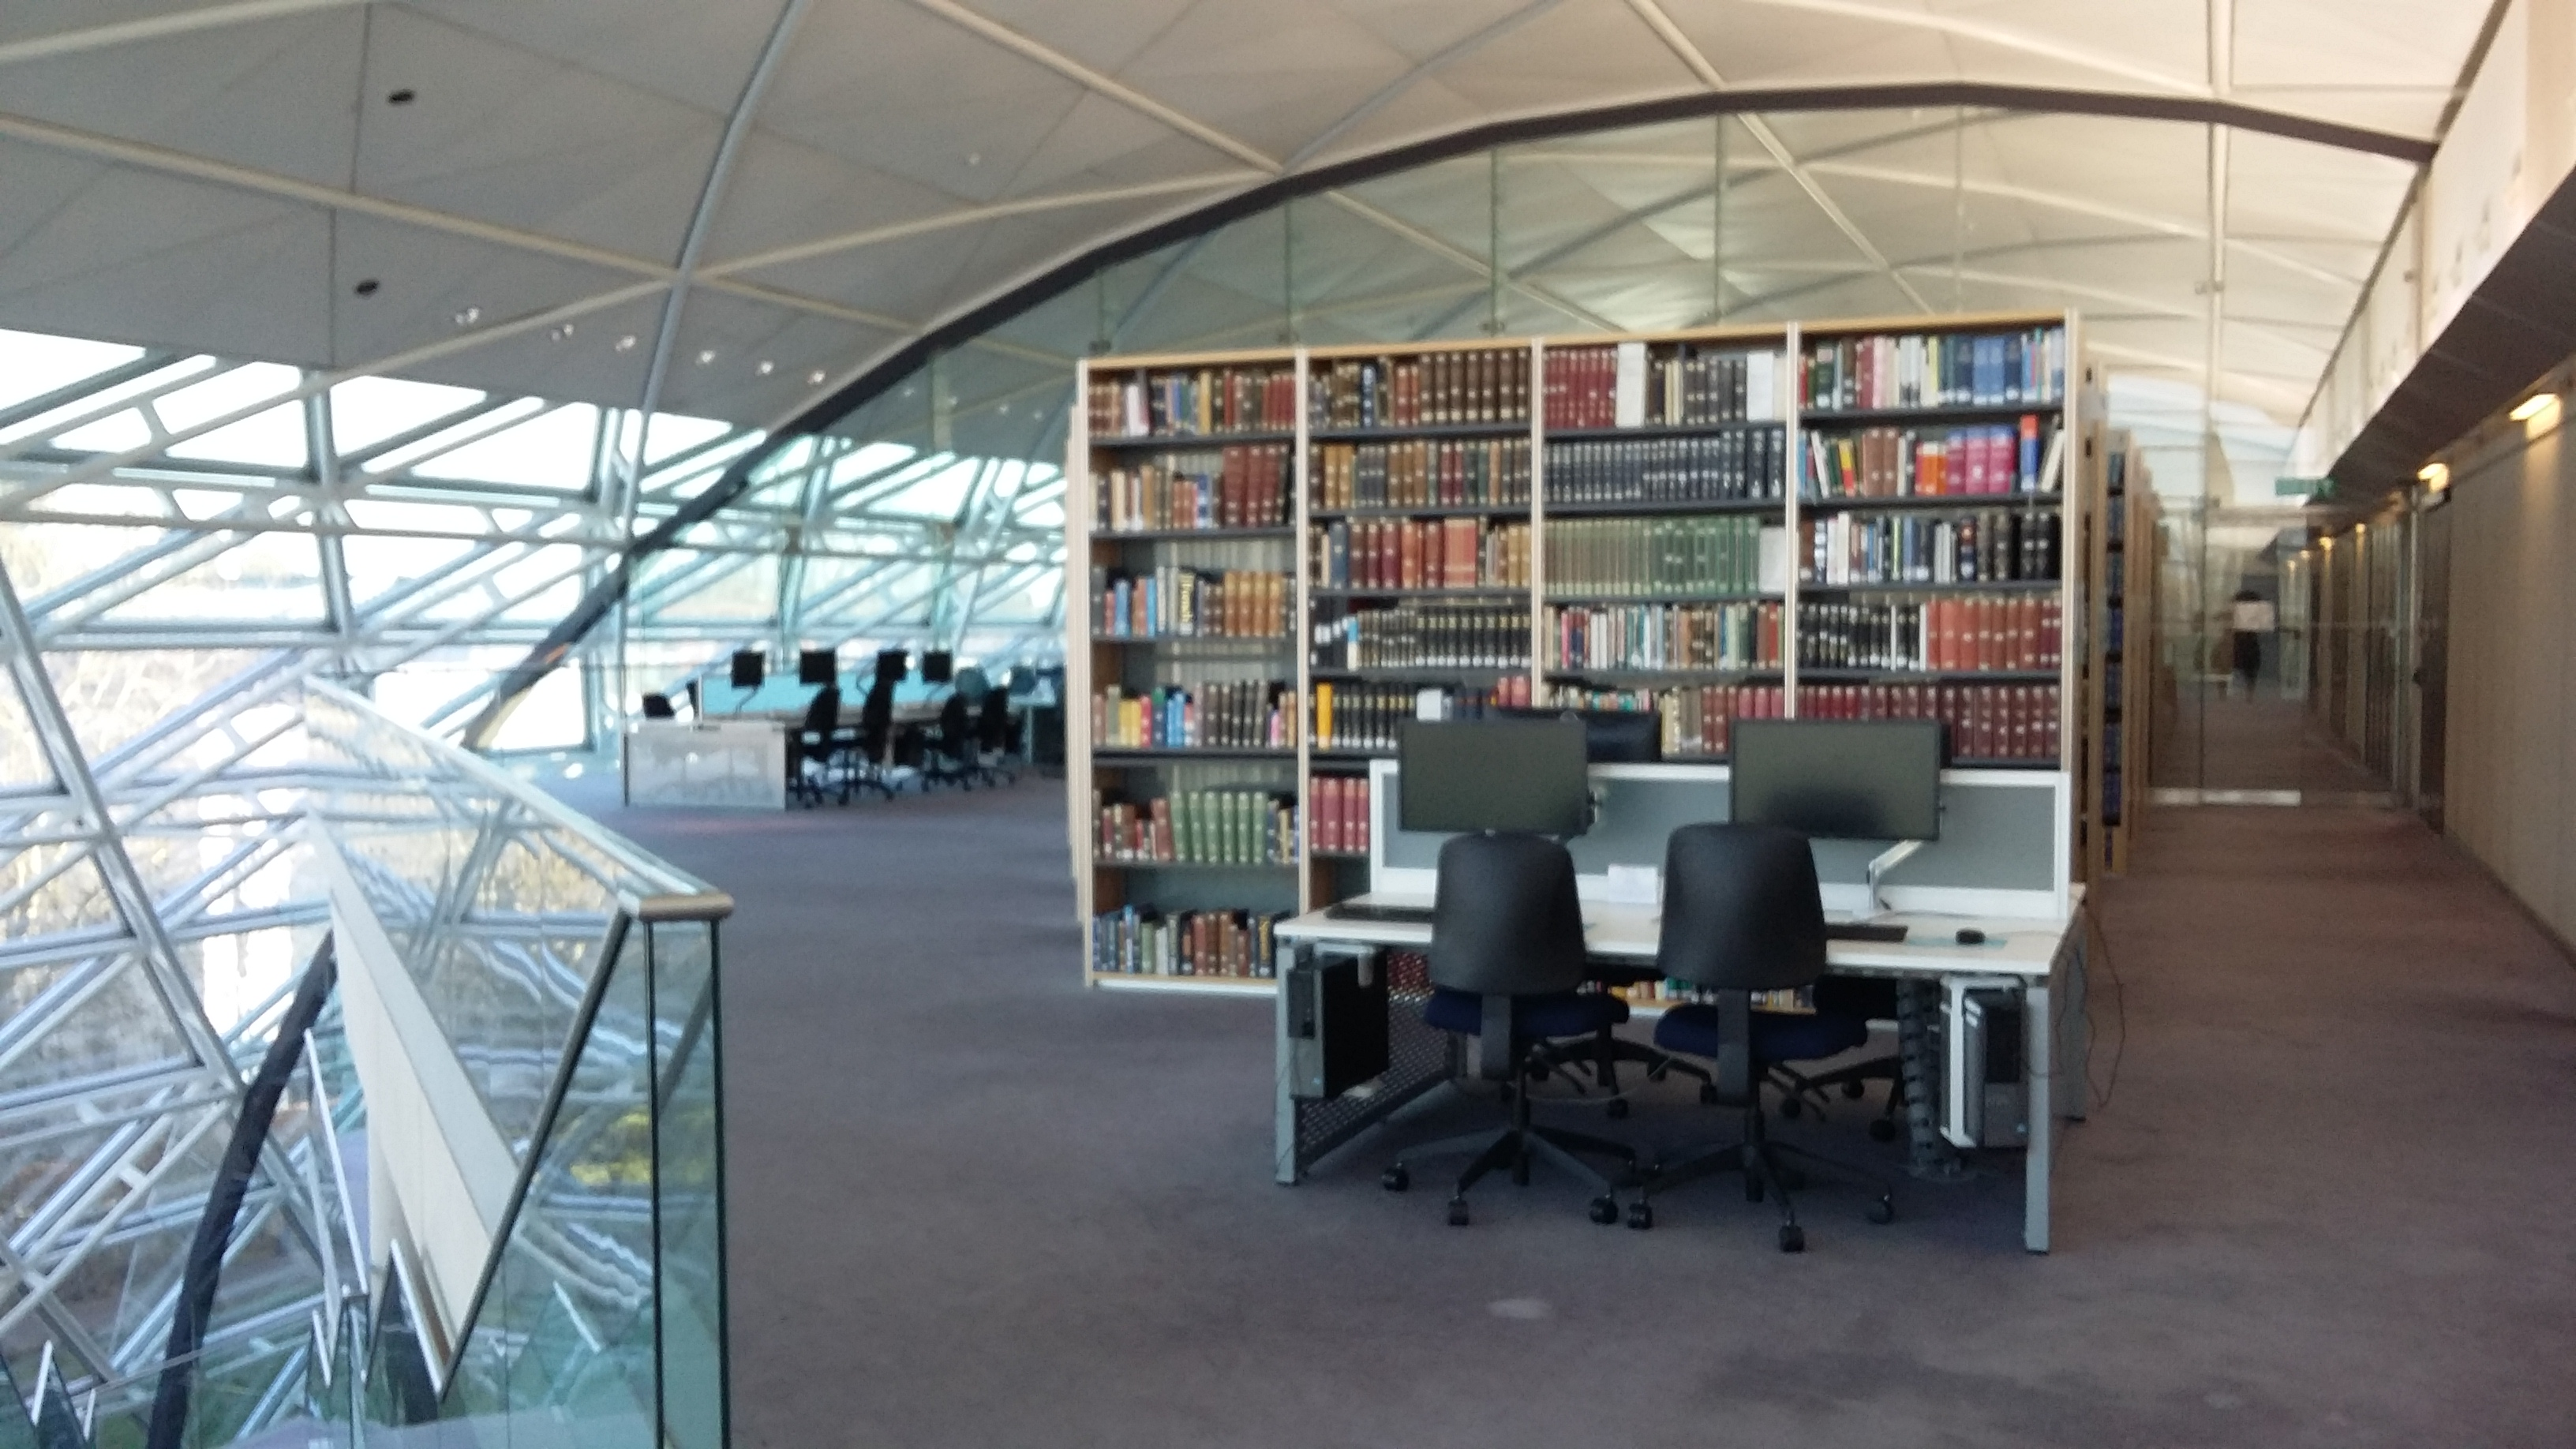 Picture of the third floor of the Squire Law Library with books and computers and a stunning building designed by Foster and partners.